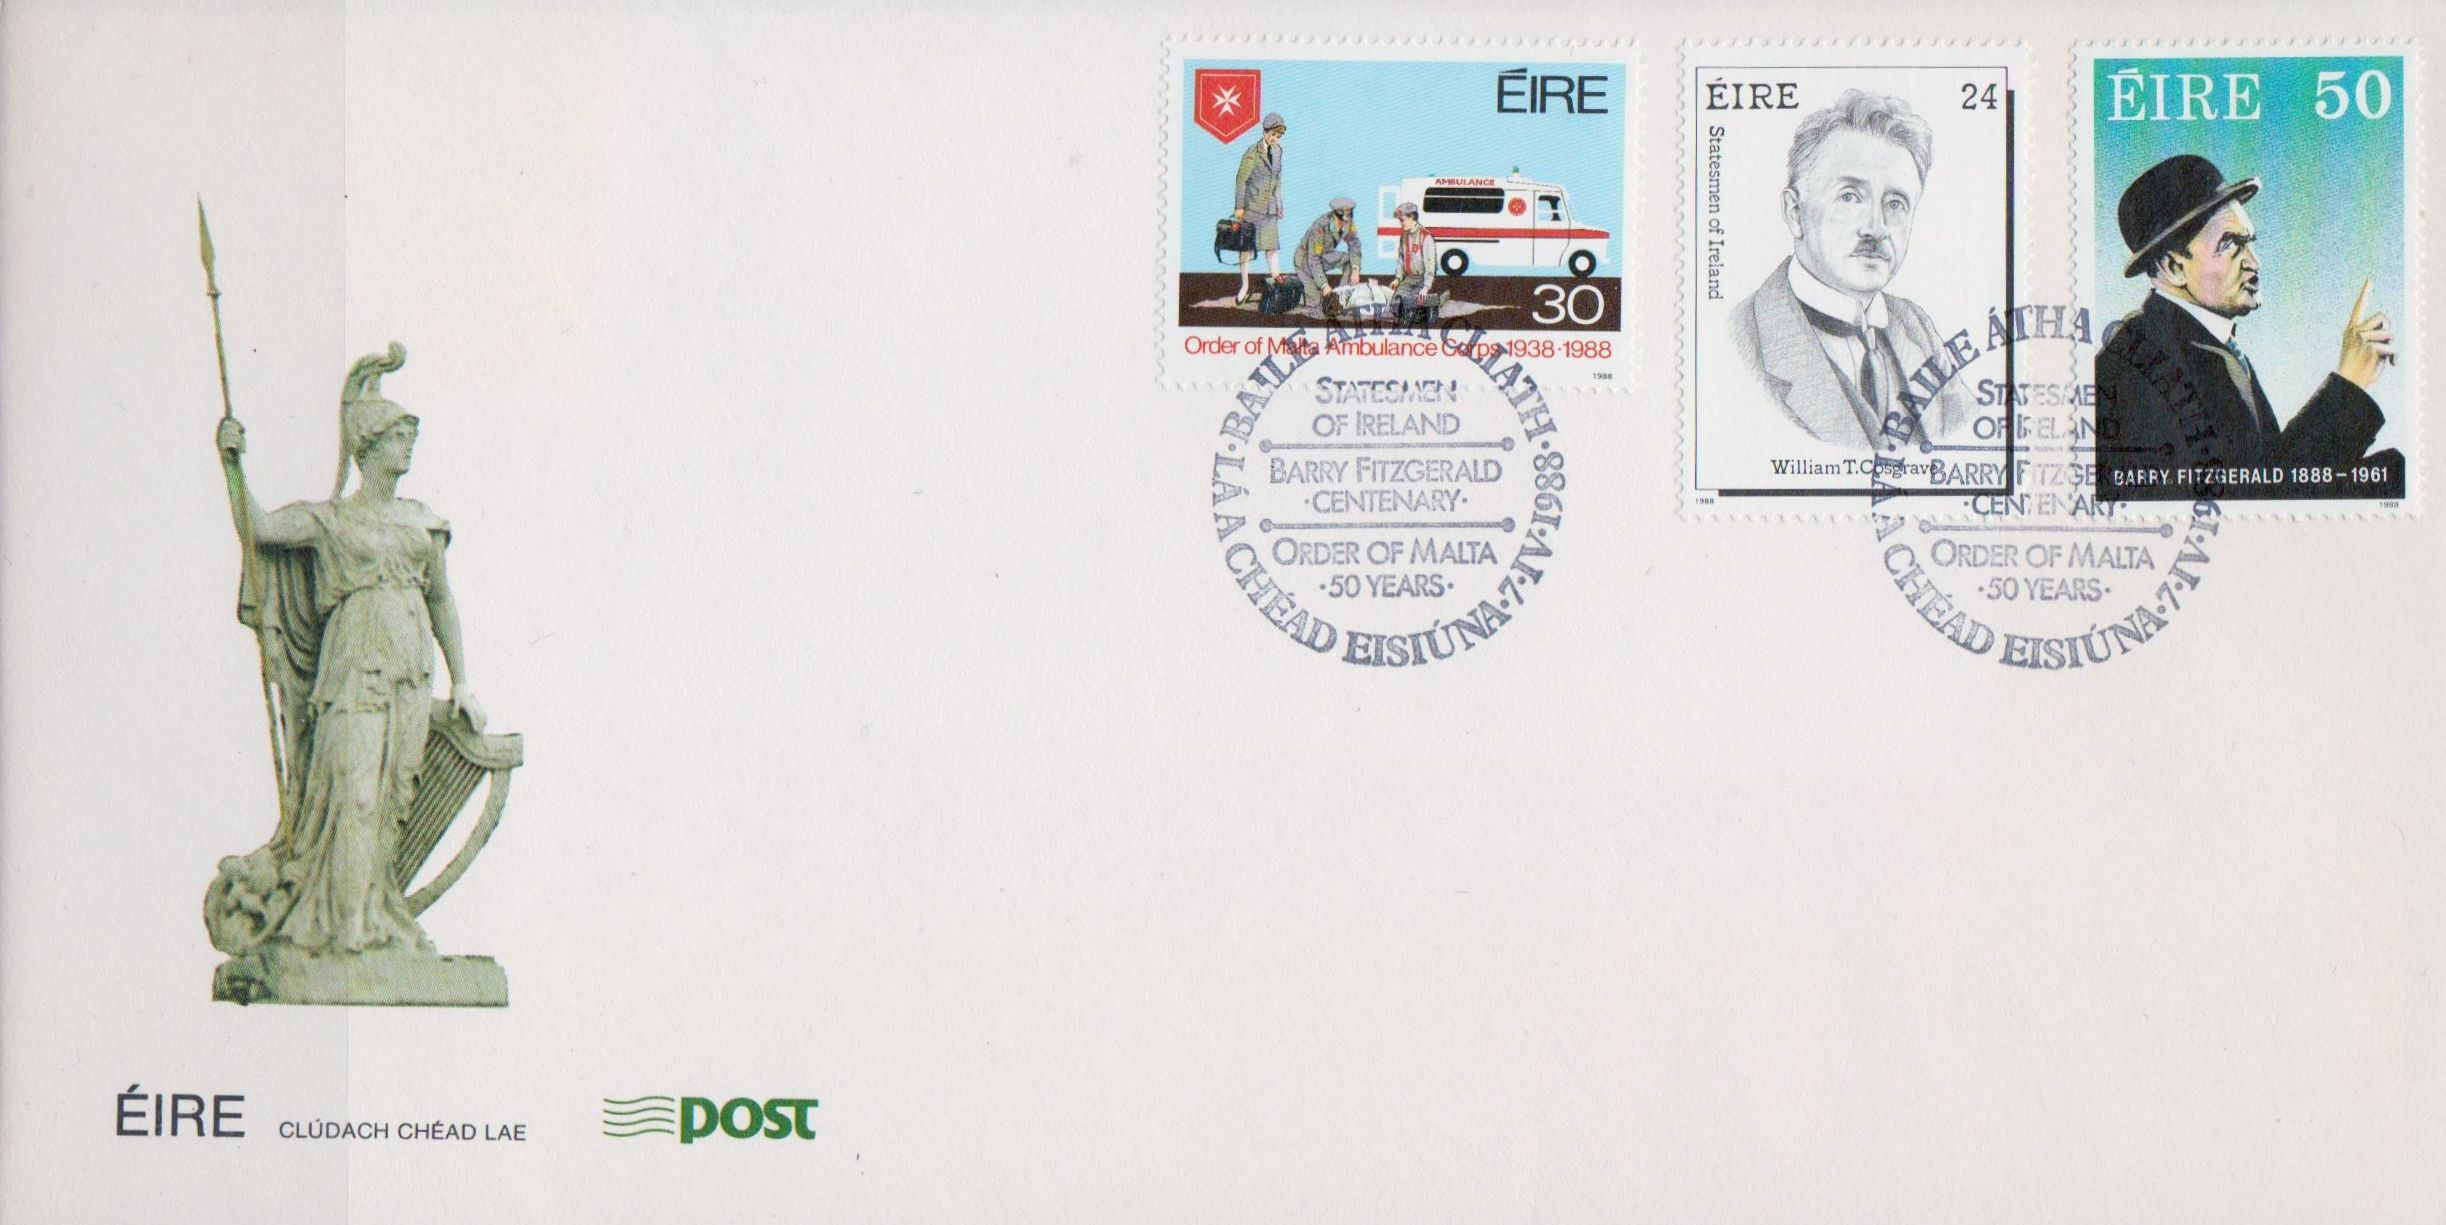 I don't recall seeing a First Day Cover with 3 unrelated stamp subjects on one cover, but here is one from Ireland: - Order of Malta Ambulance Corps 1938-1988 - Barry Fitzgerald, Oscar Winning Actor - William T. Cosgrave, Statesmen of Ireland.